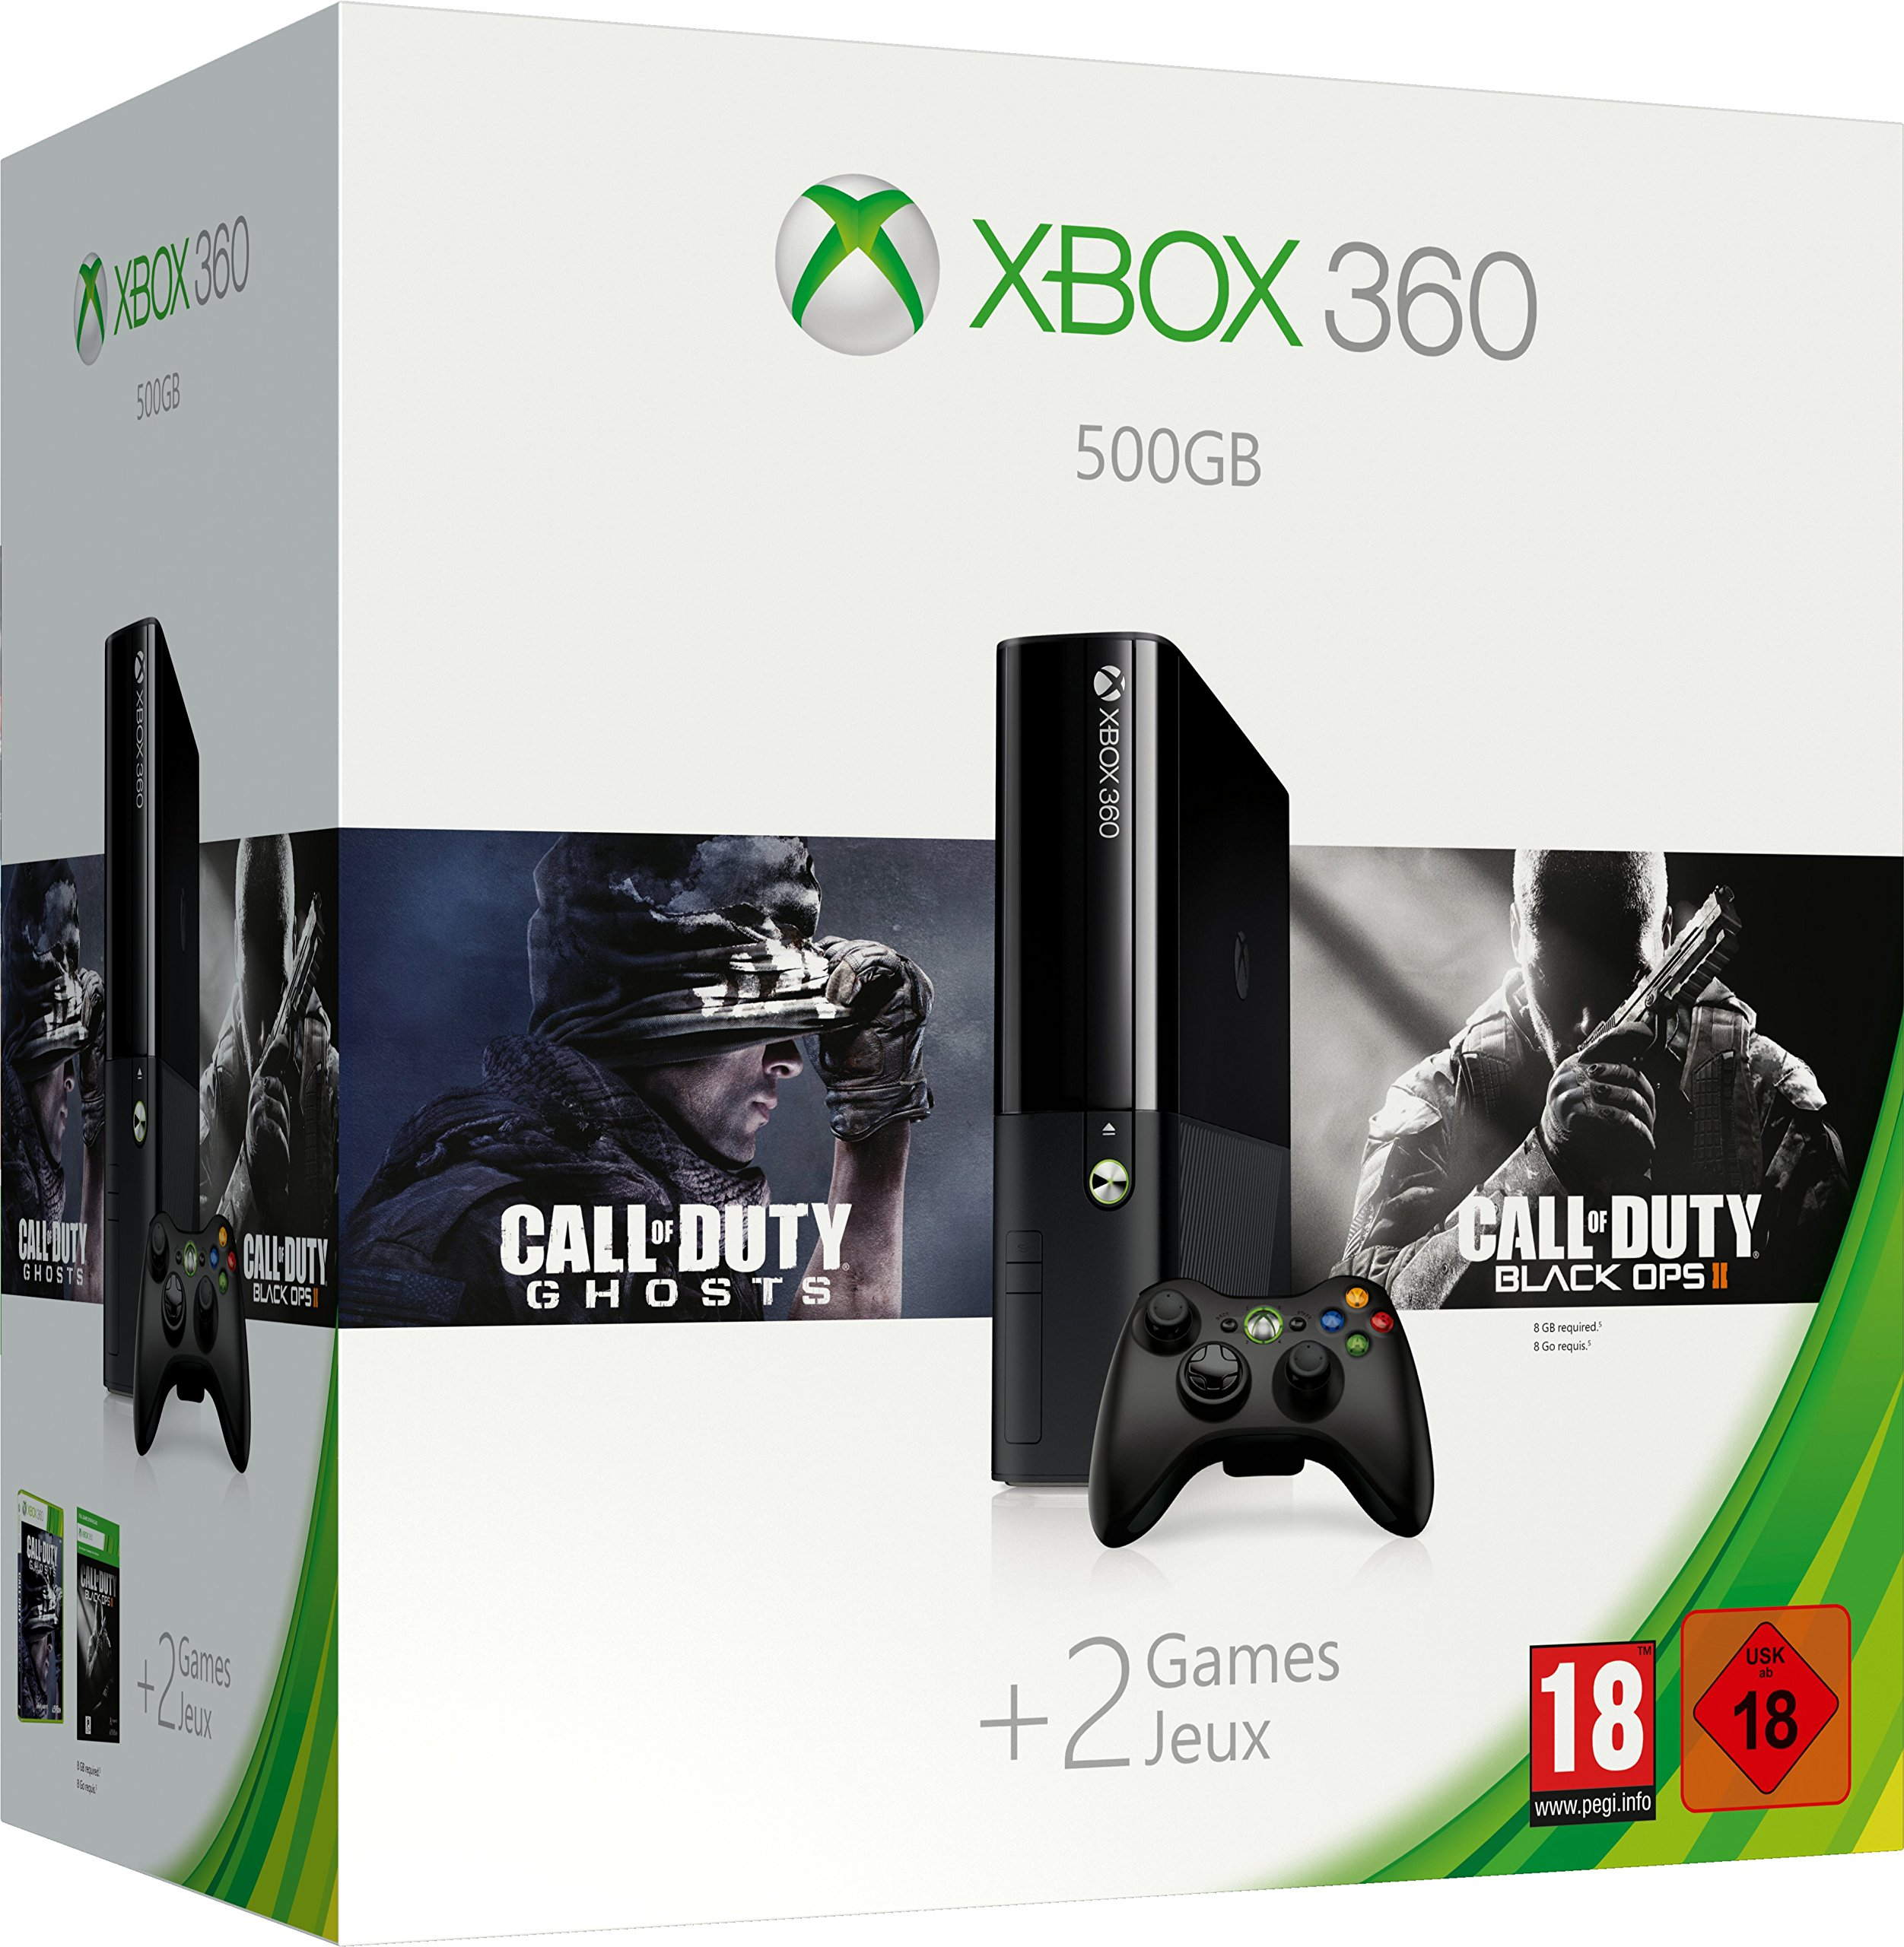 Xbox 360 – 500 GB inkl. Call of Duty Ghosts + Call of Duty Black Ops 2 (DLC) [Importación Alemana]